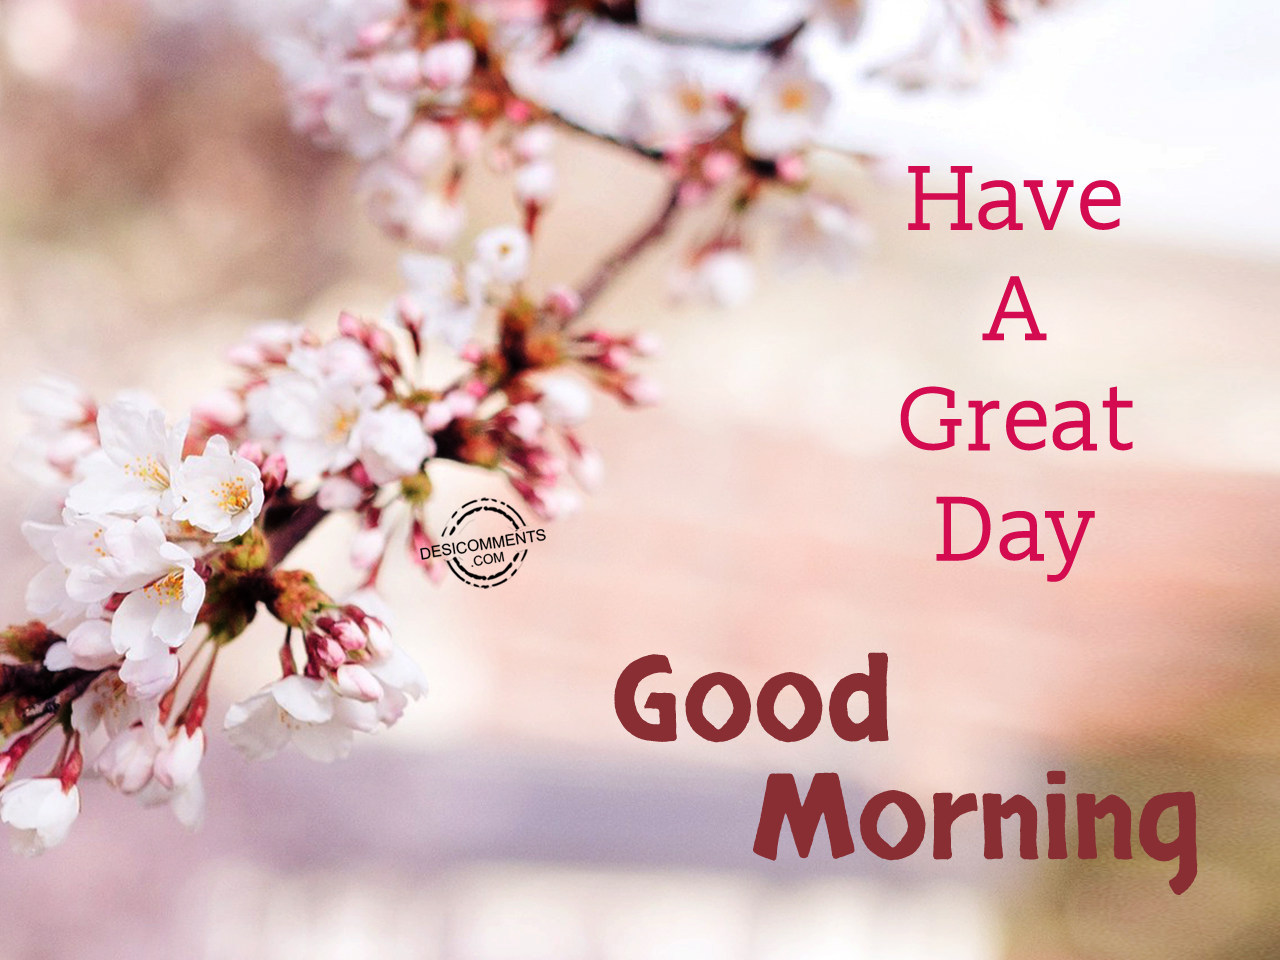 Good Morning Have A Great Day : Have a great day good morning desicomments